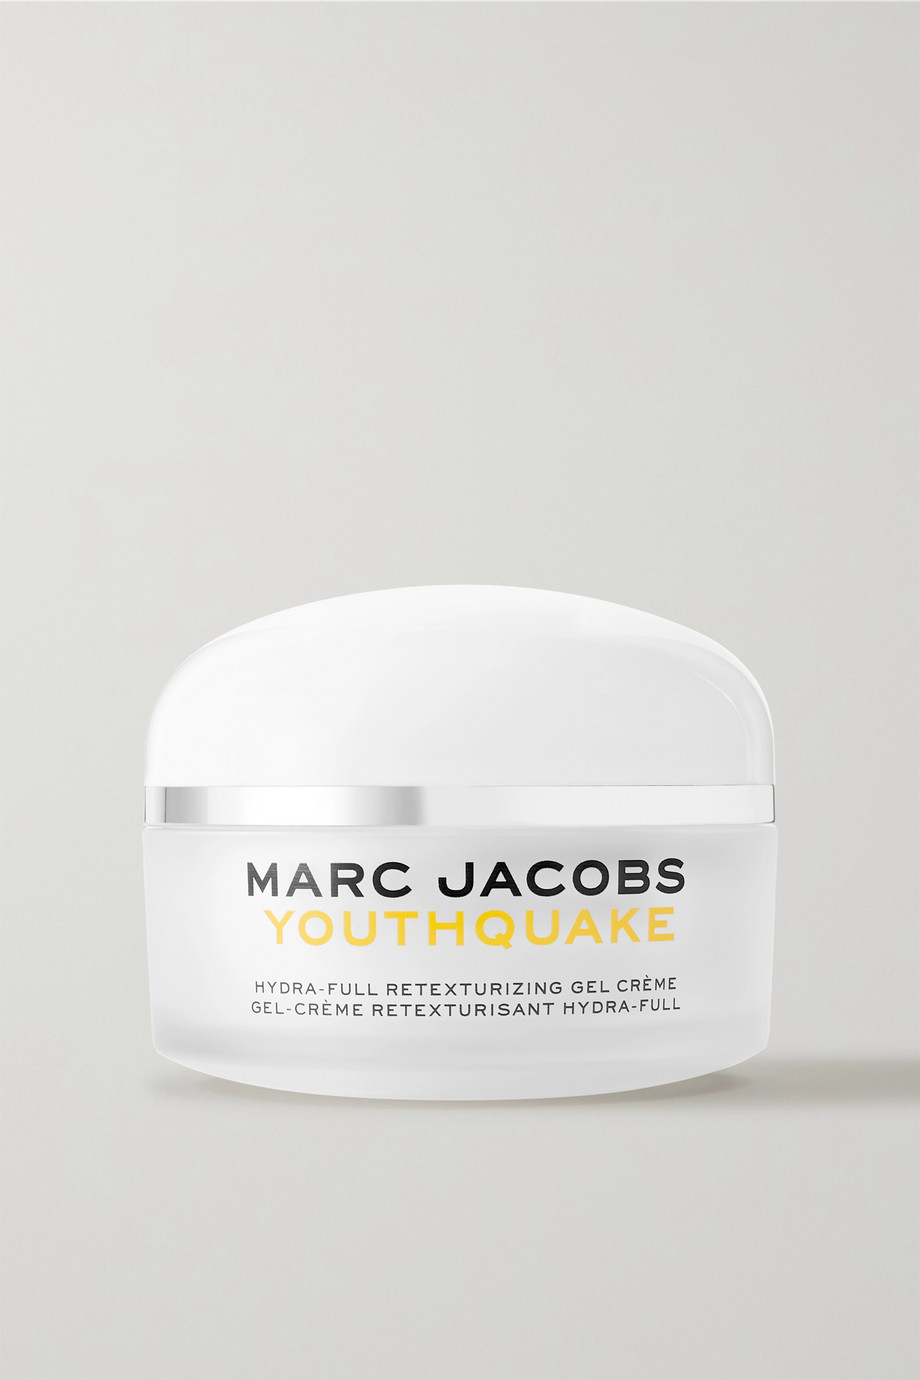 Marc Jacobs Beauty Youthquake Hydra-Full Retexturizing Gel Crème, 90ml